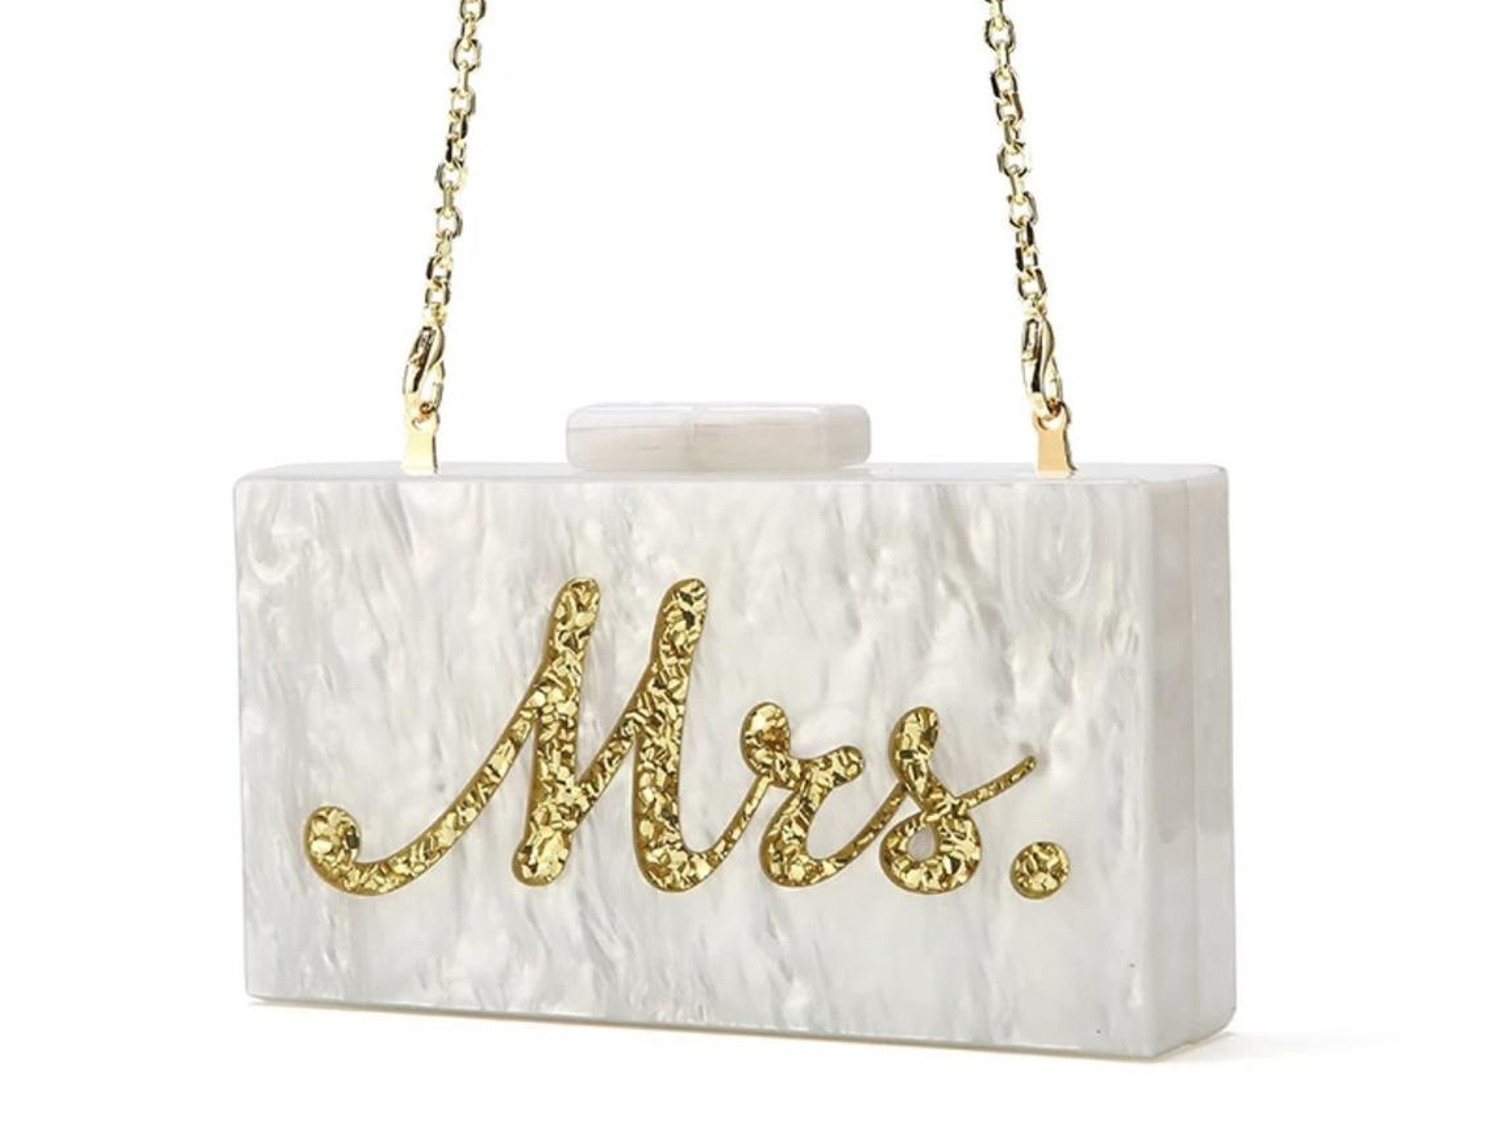 Mrs Gold_wedding bachelorette acrylic clutch bag with engraving